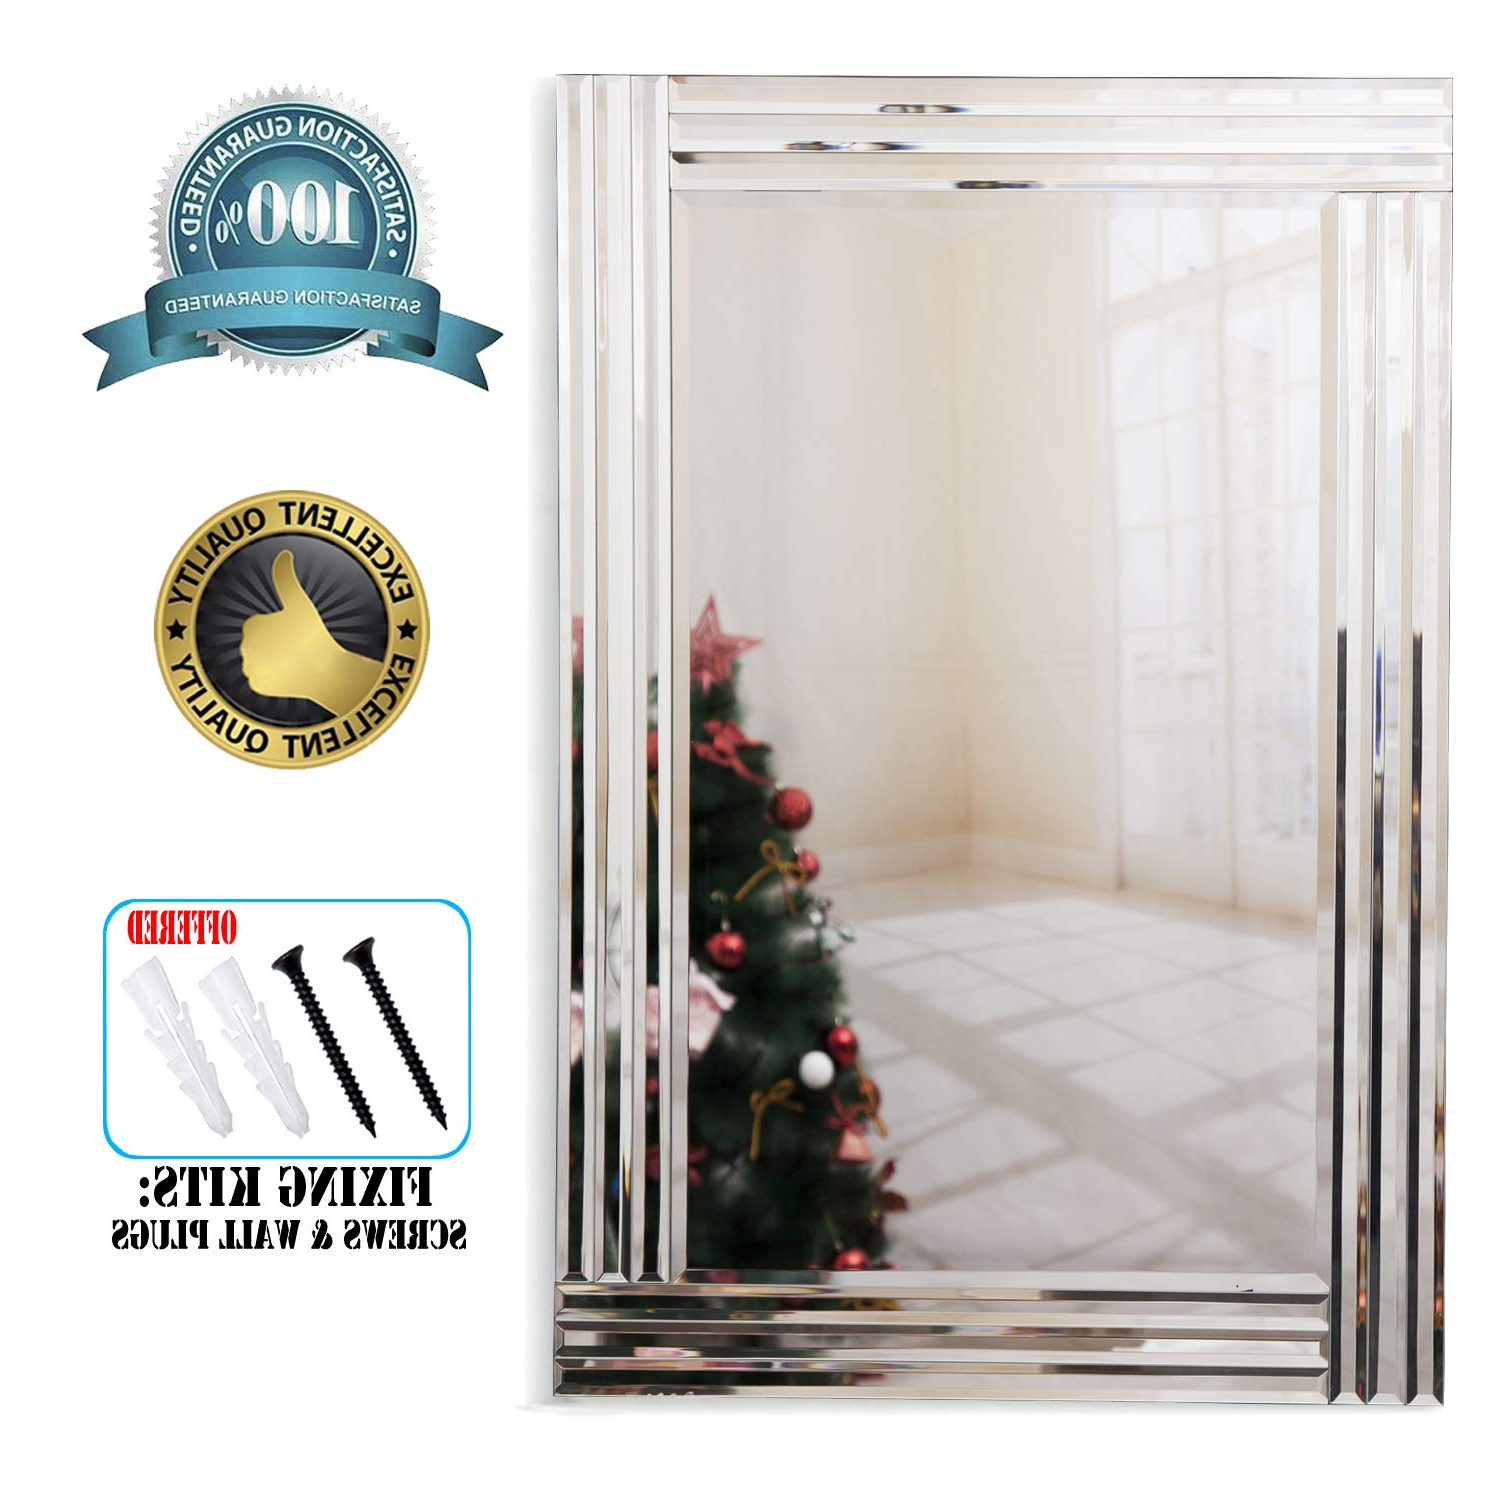 Large Silver Wall Mirrors Regarding Famous Richtop Wall Mirror Triple Bevelled Edges Rectangle Large Silver Wall  Mounted Mirror For Living Room, Hallway,office(90X60Cm) (View 8 of 20)